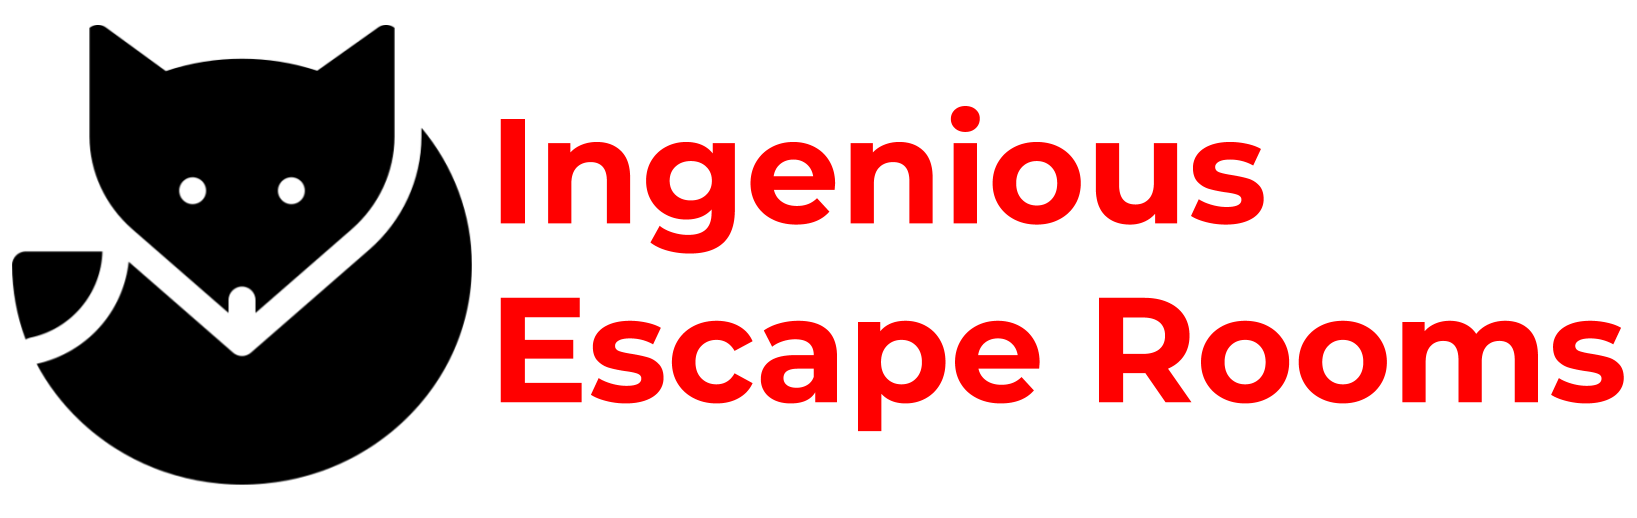 Ingenious Escape Rooms |   Shortcodes